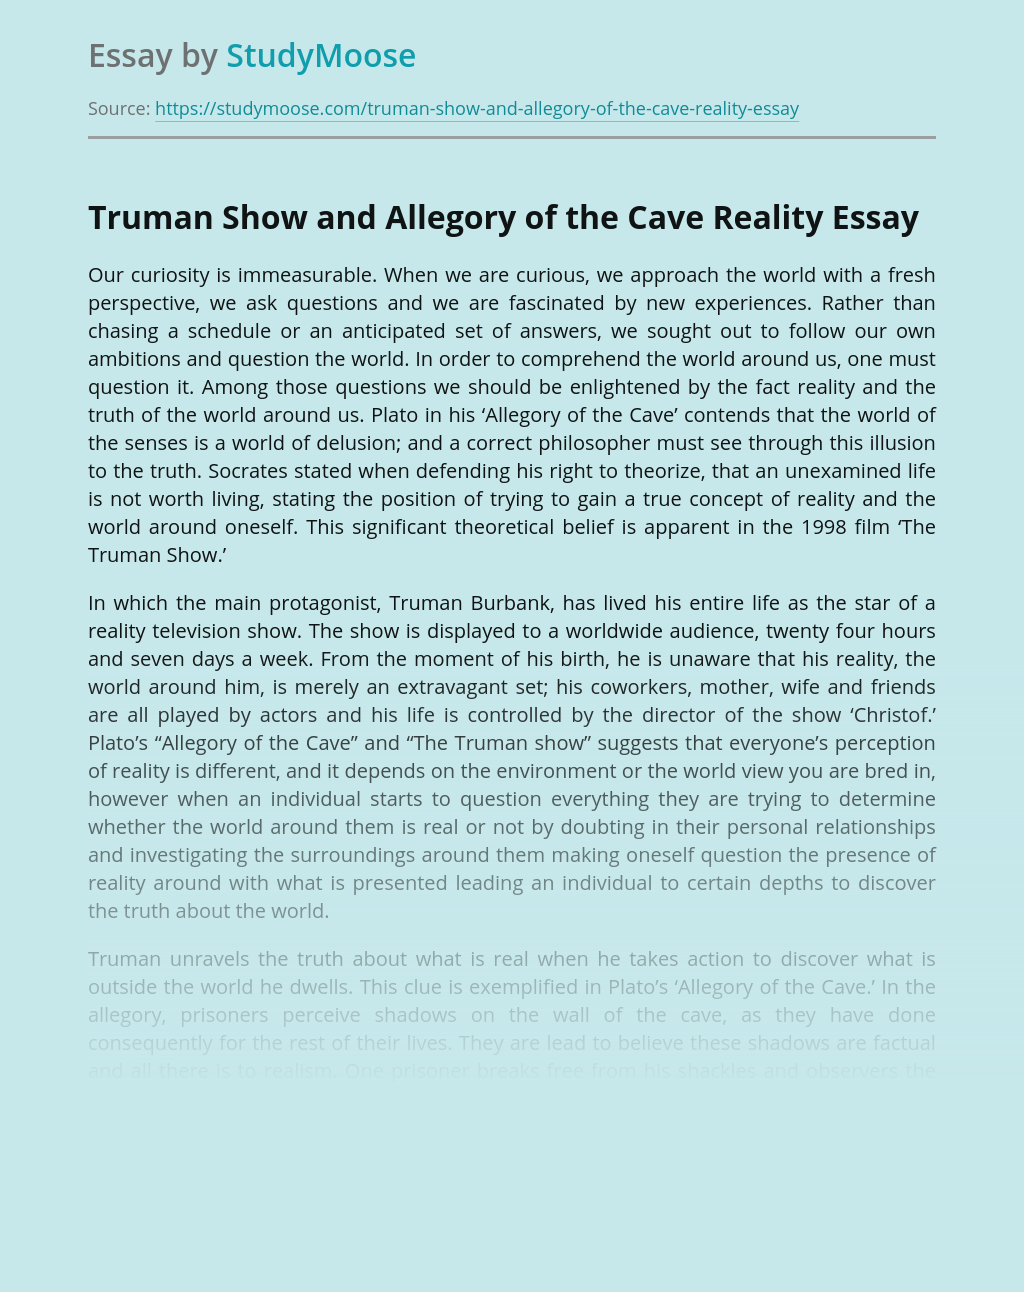 Truman Show and Allegory of the Cave Reality